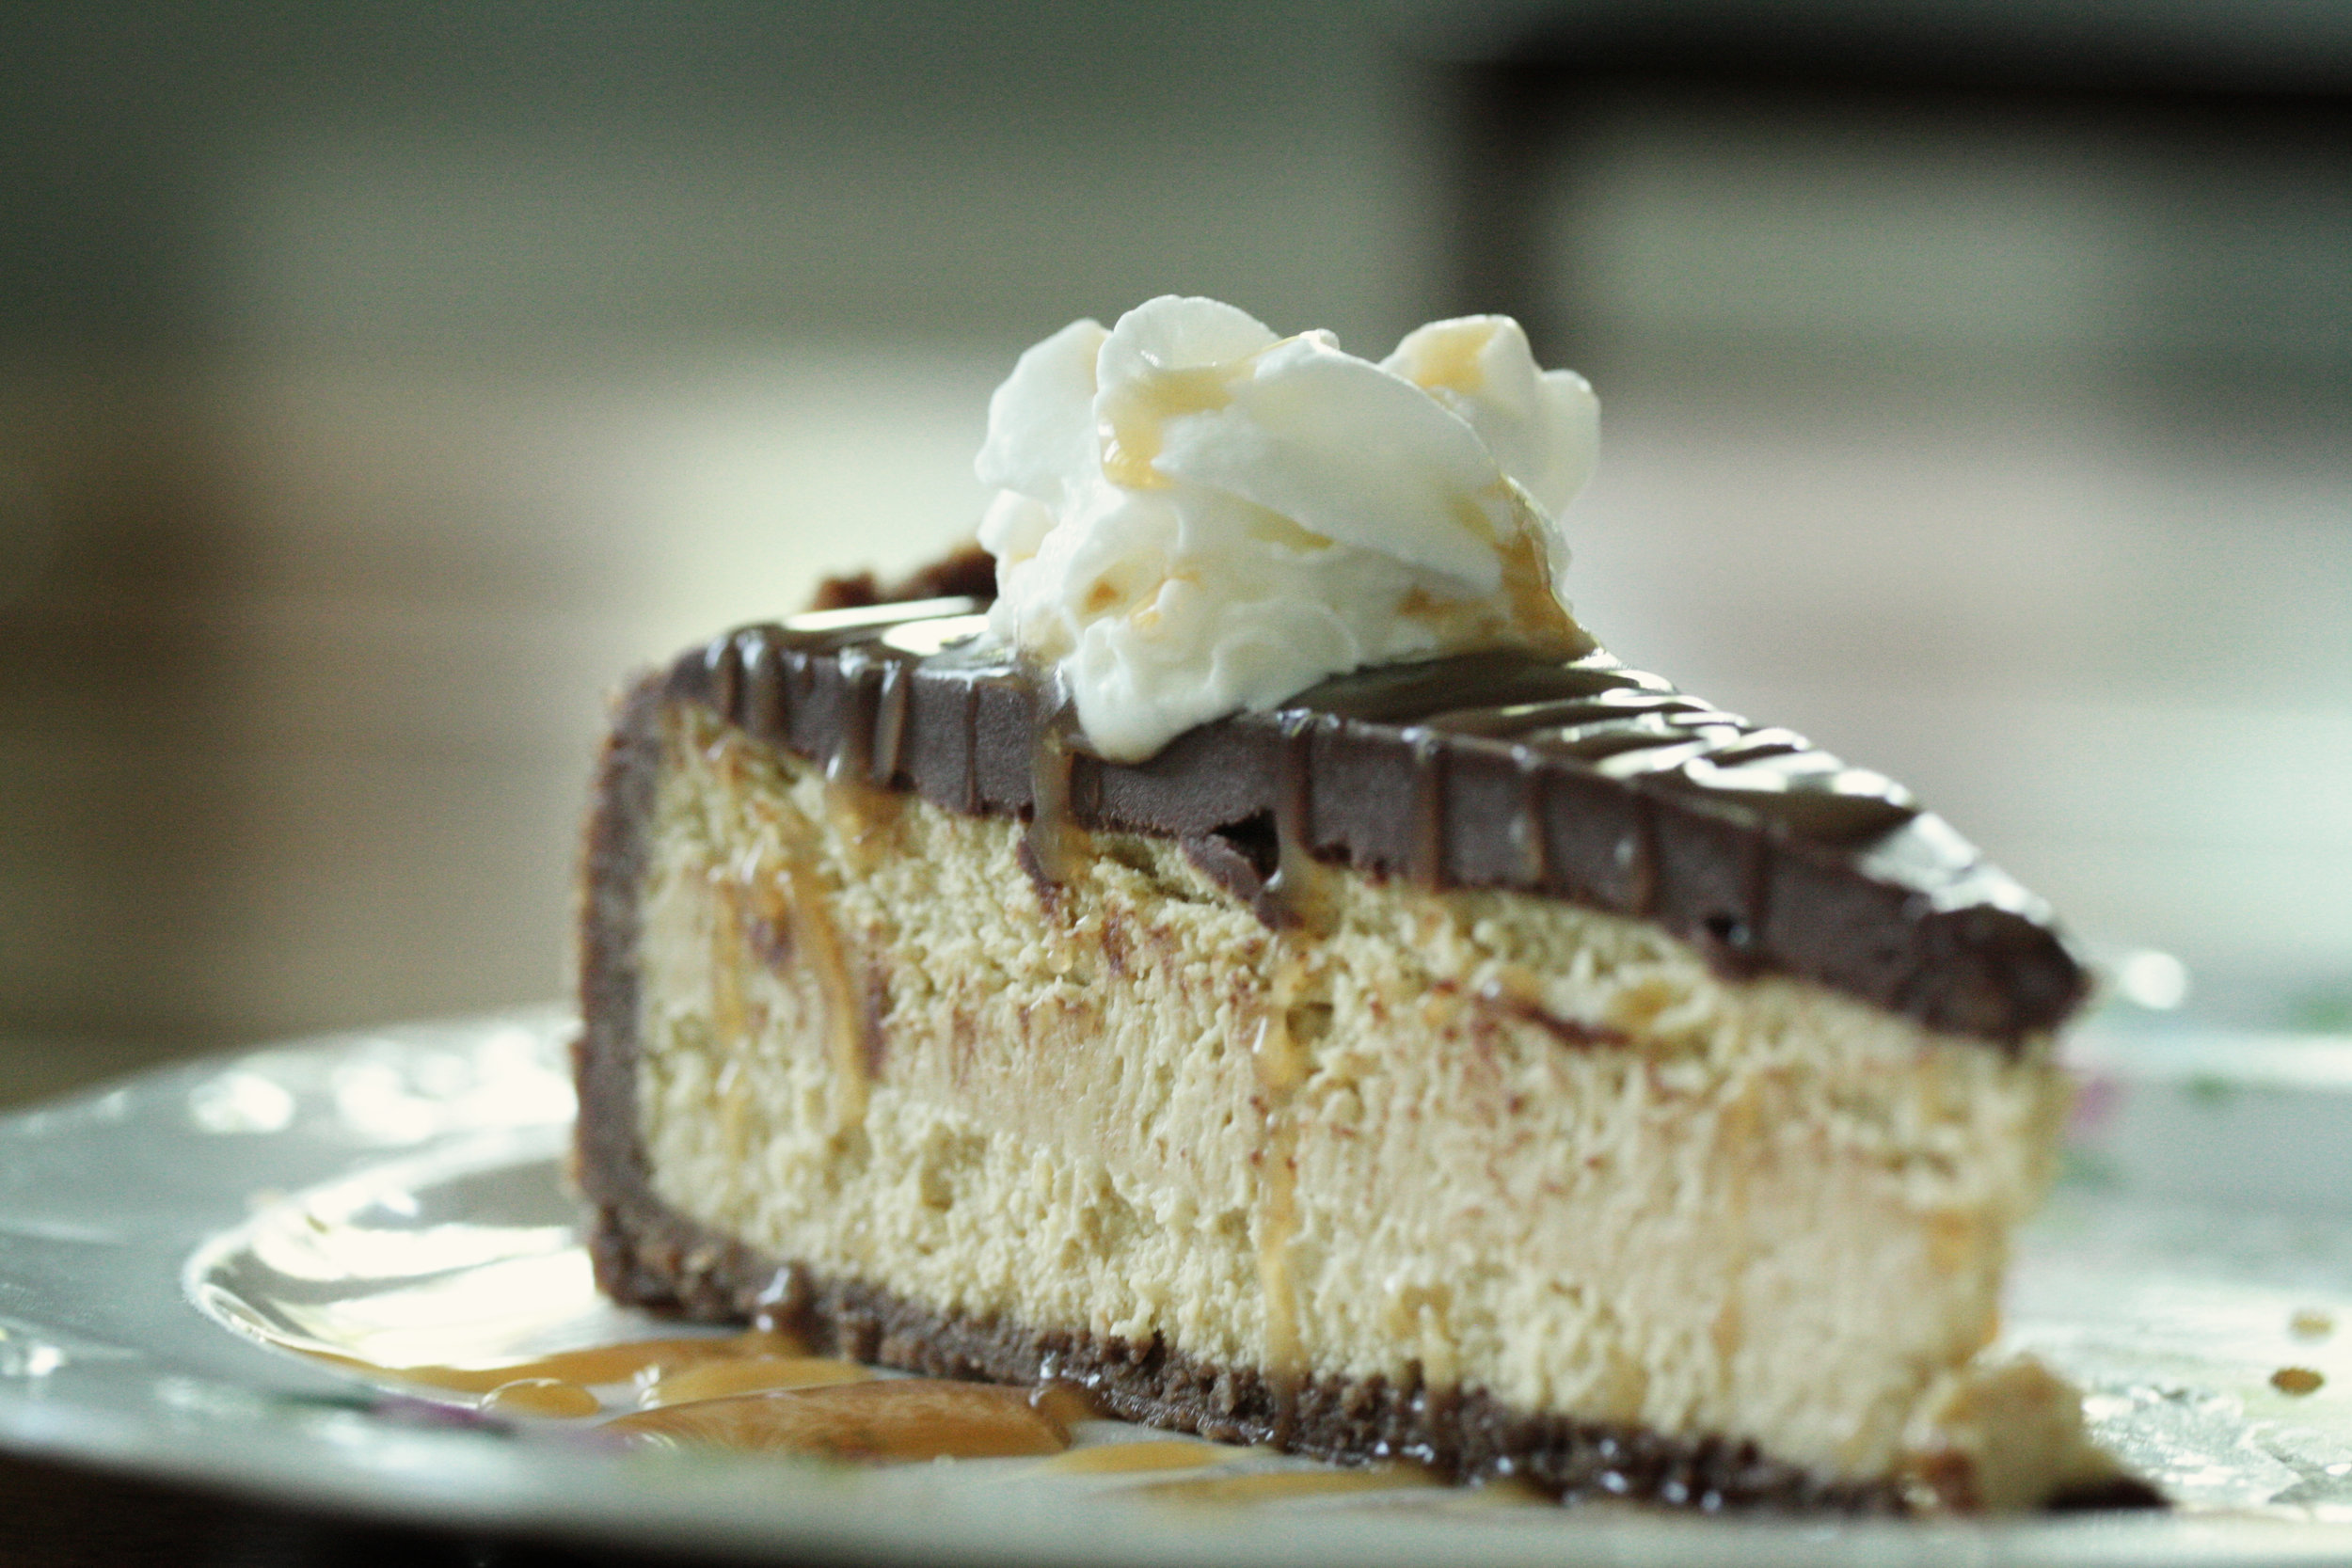 iced mocha cheesecake on plate